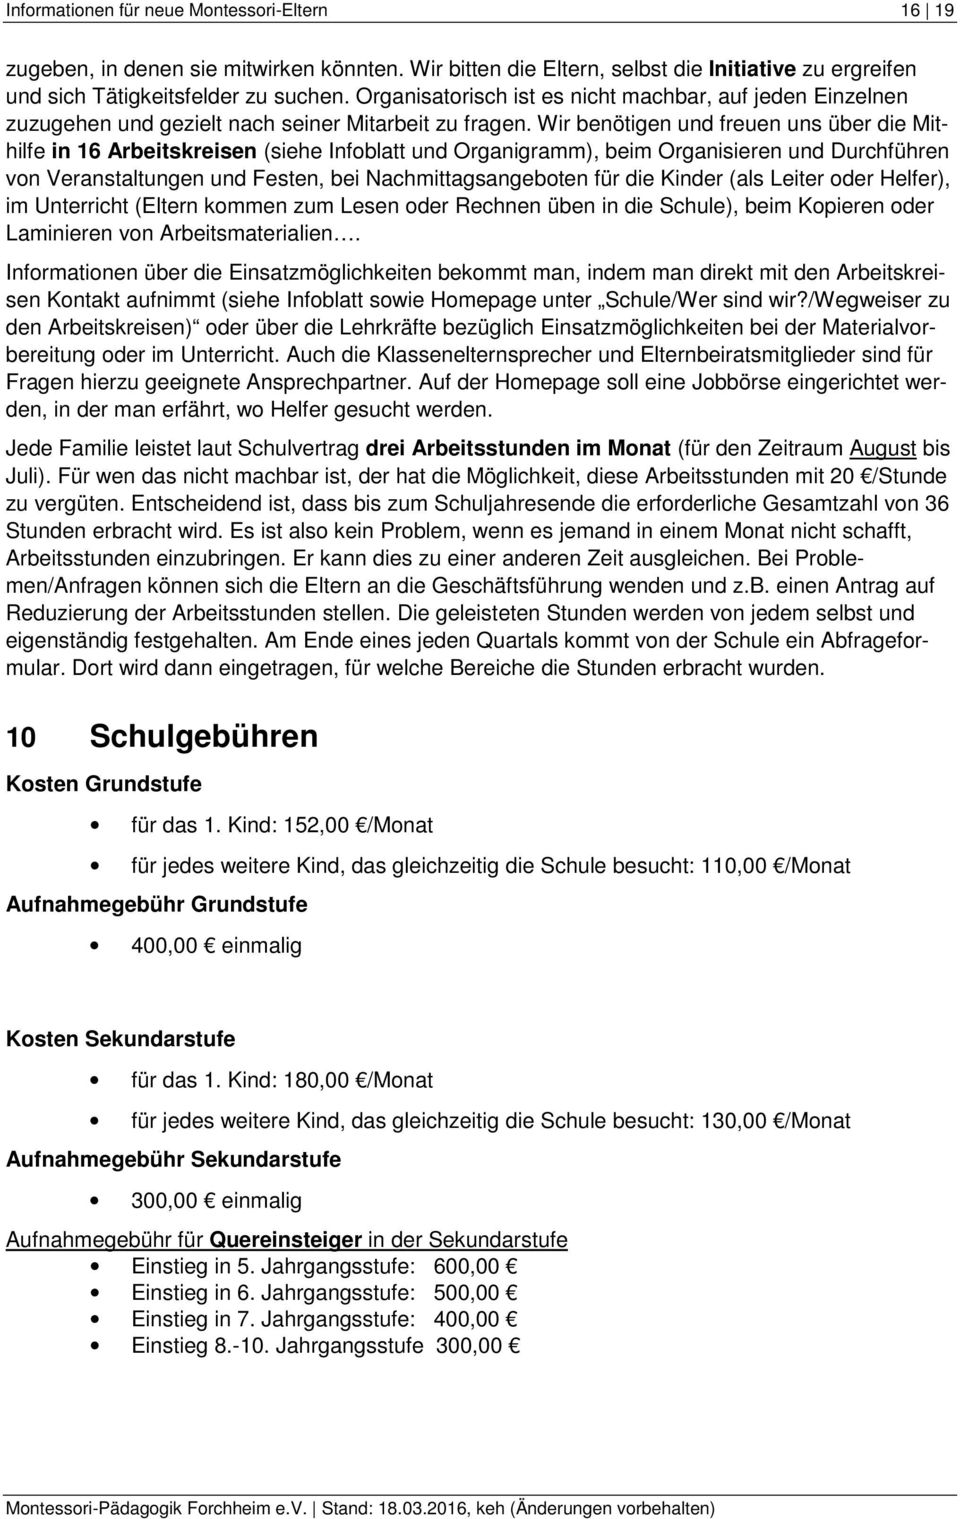 Fein Montessori Lehrer Lebenslauf Bilder - Entry Level Resume ...